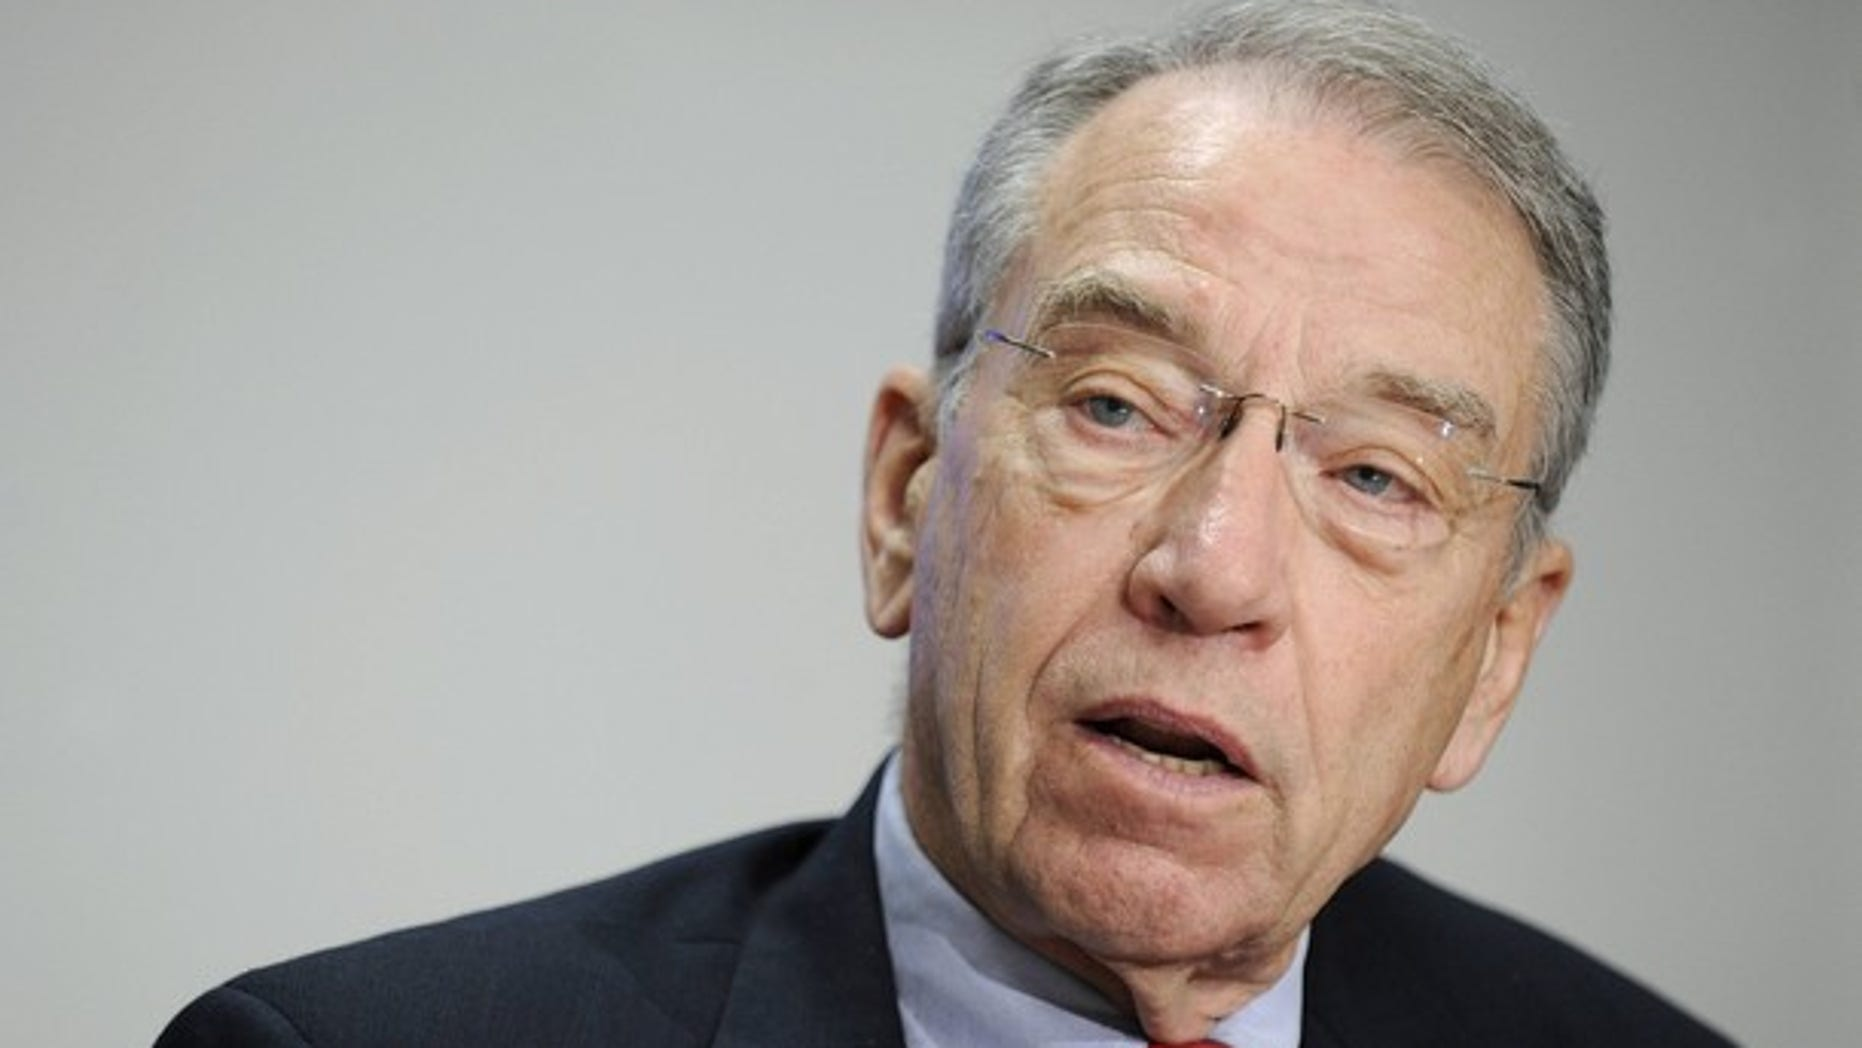 Sen. Charles Grassley answers questions during the 2009 Reuters Washington Summit in Washington Oct. 19, 2009.